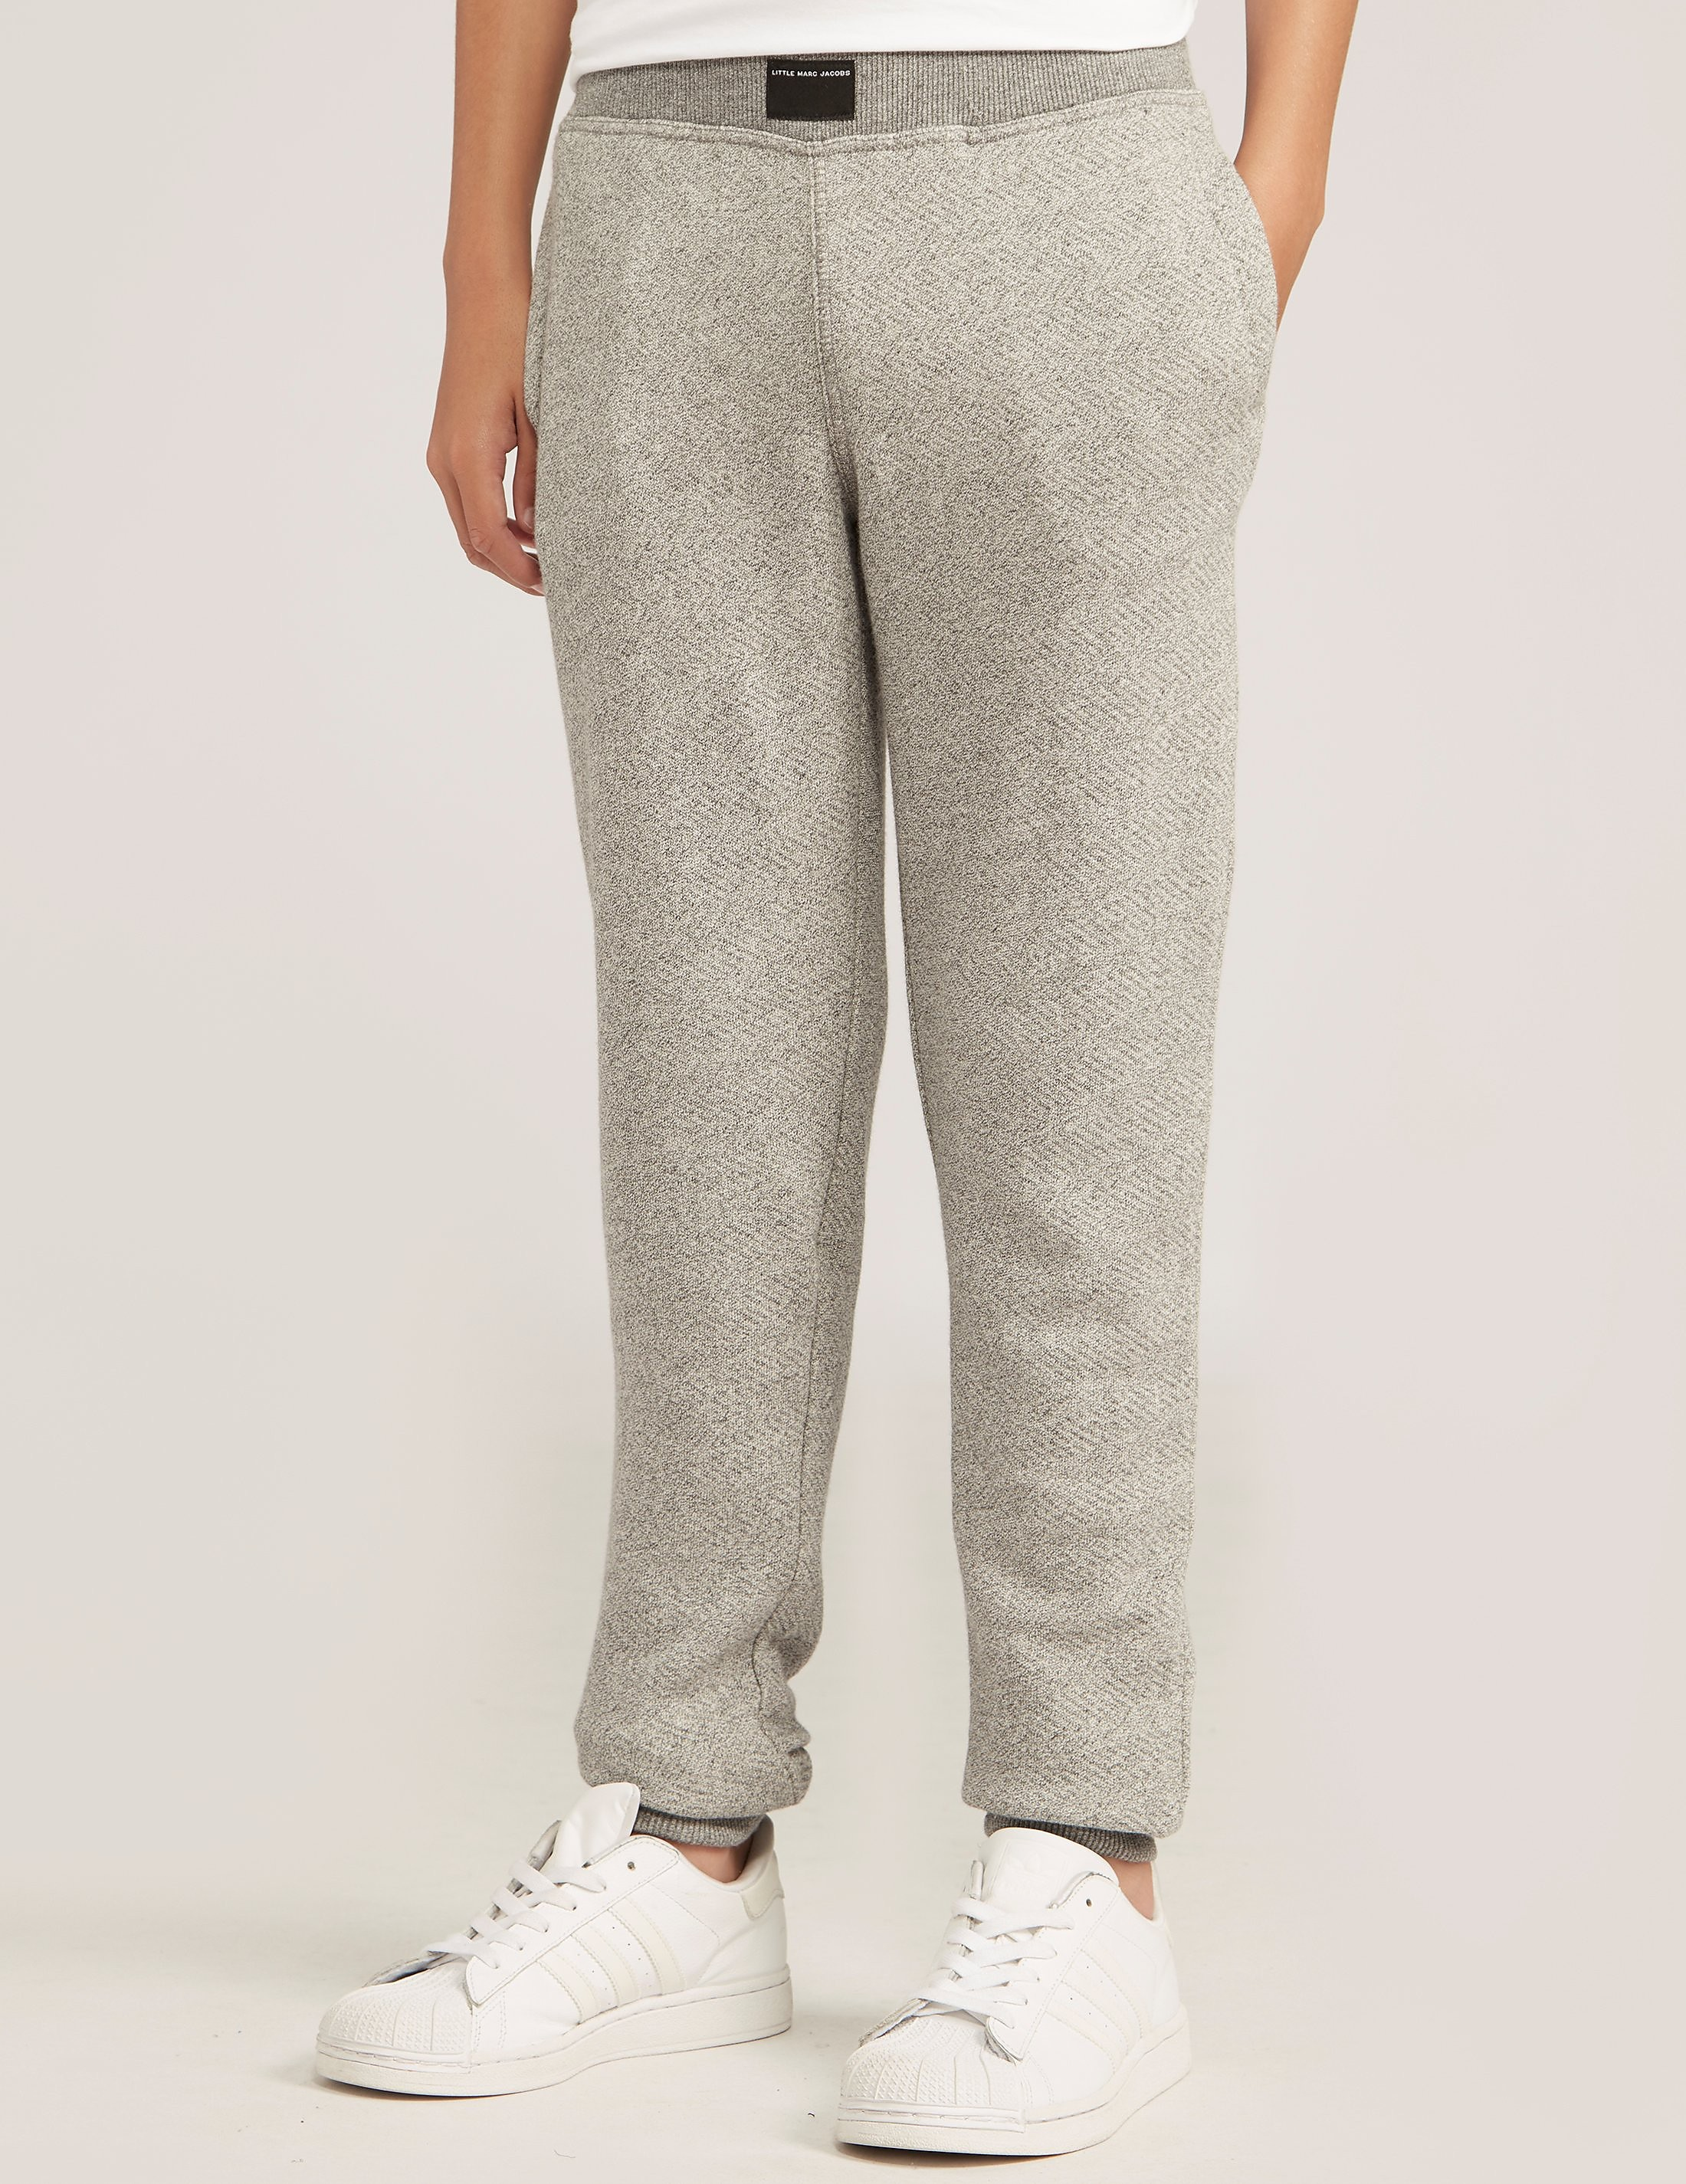 Little Marc Jacobs Kids' Jogging Bottoms